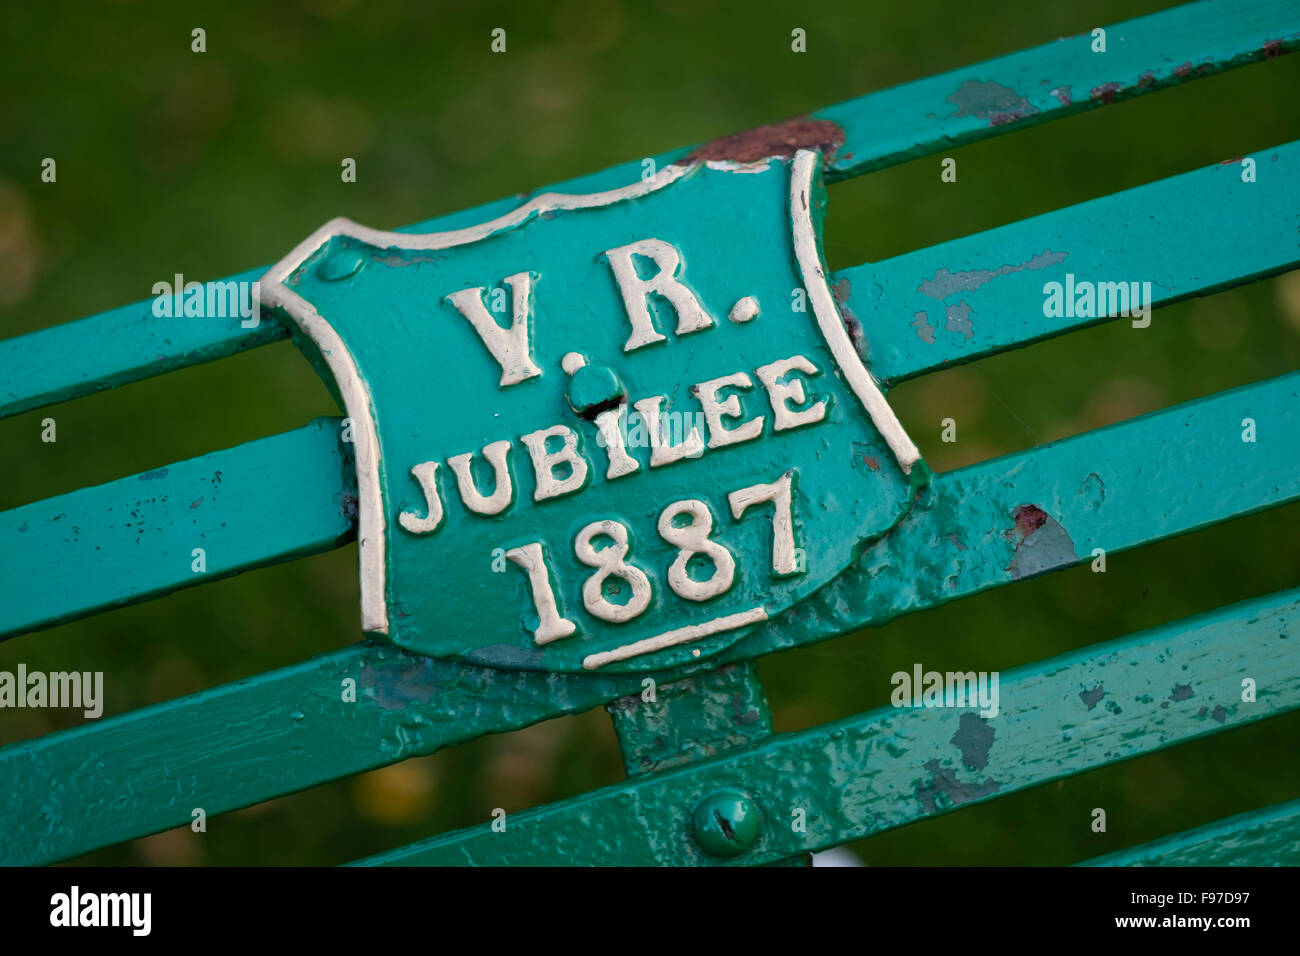 VR (Victoria Regina - Queen Victoria) 1887 jubilee memorial plaque on a park bench in Cirencester, Gloucestershire, - Stock Image